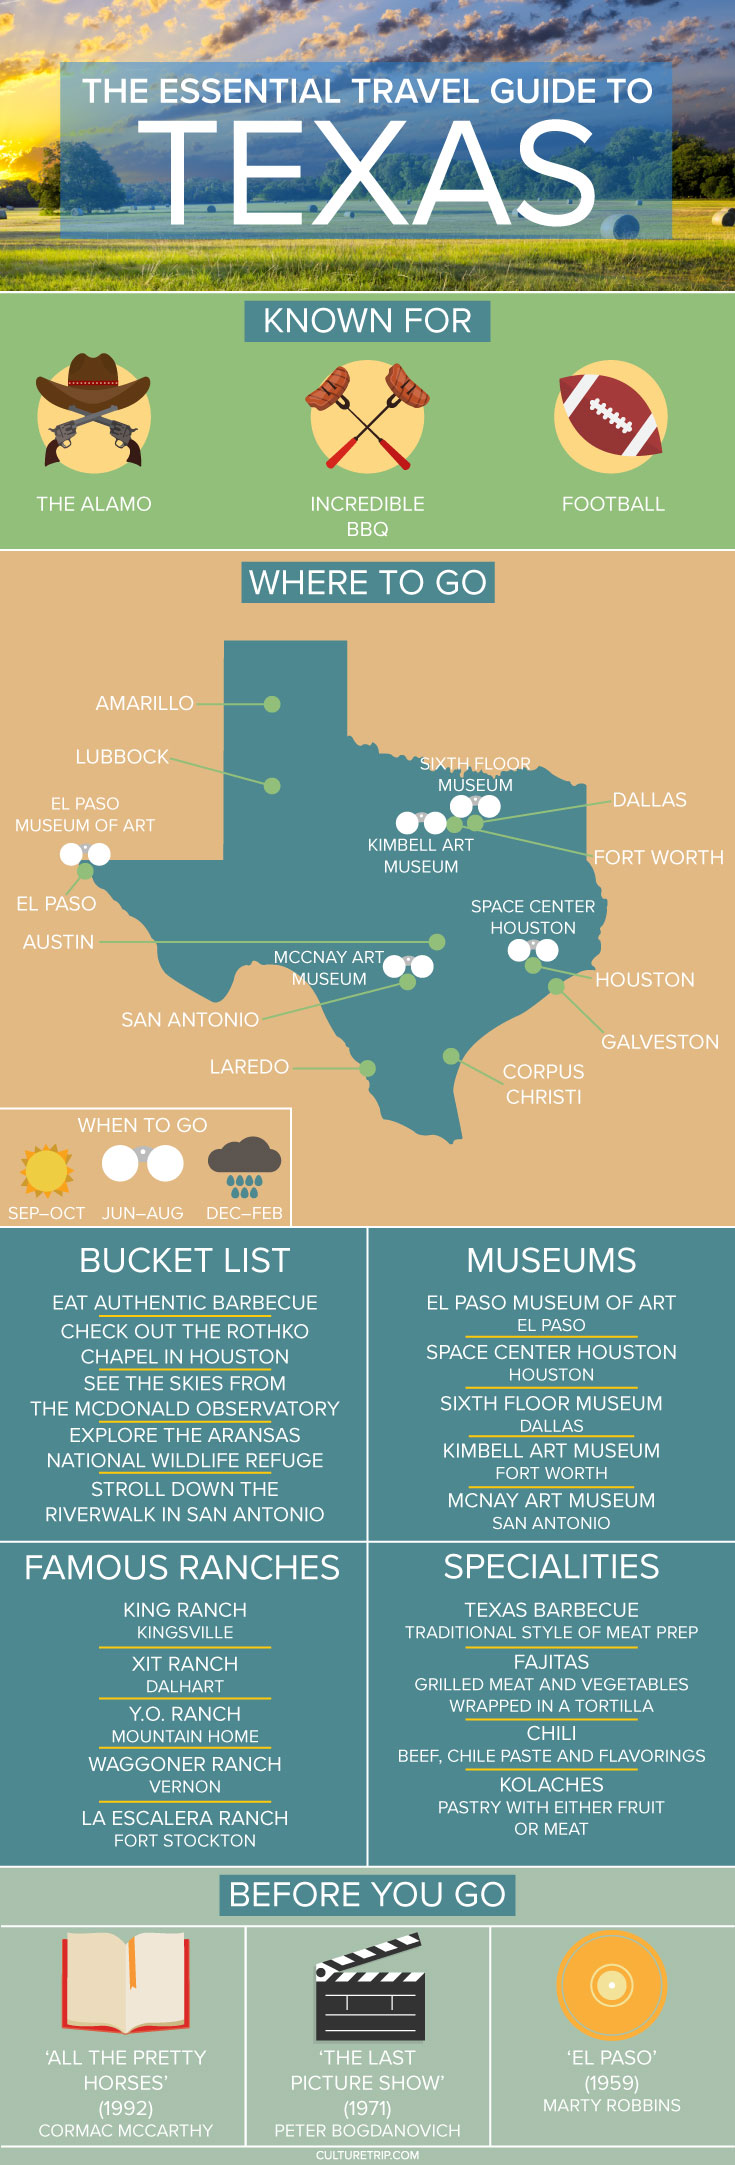 Texas Bucket List Map The Essential Travel Guide to Texas (Infographic)